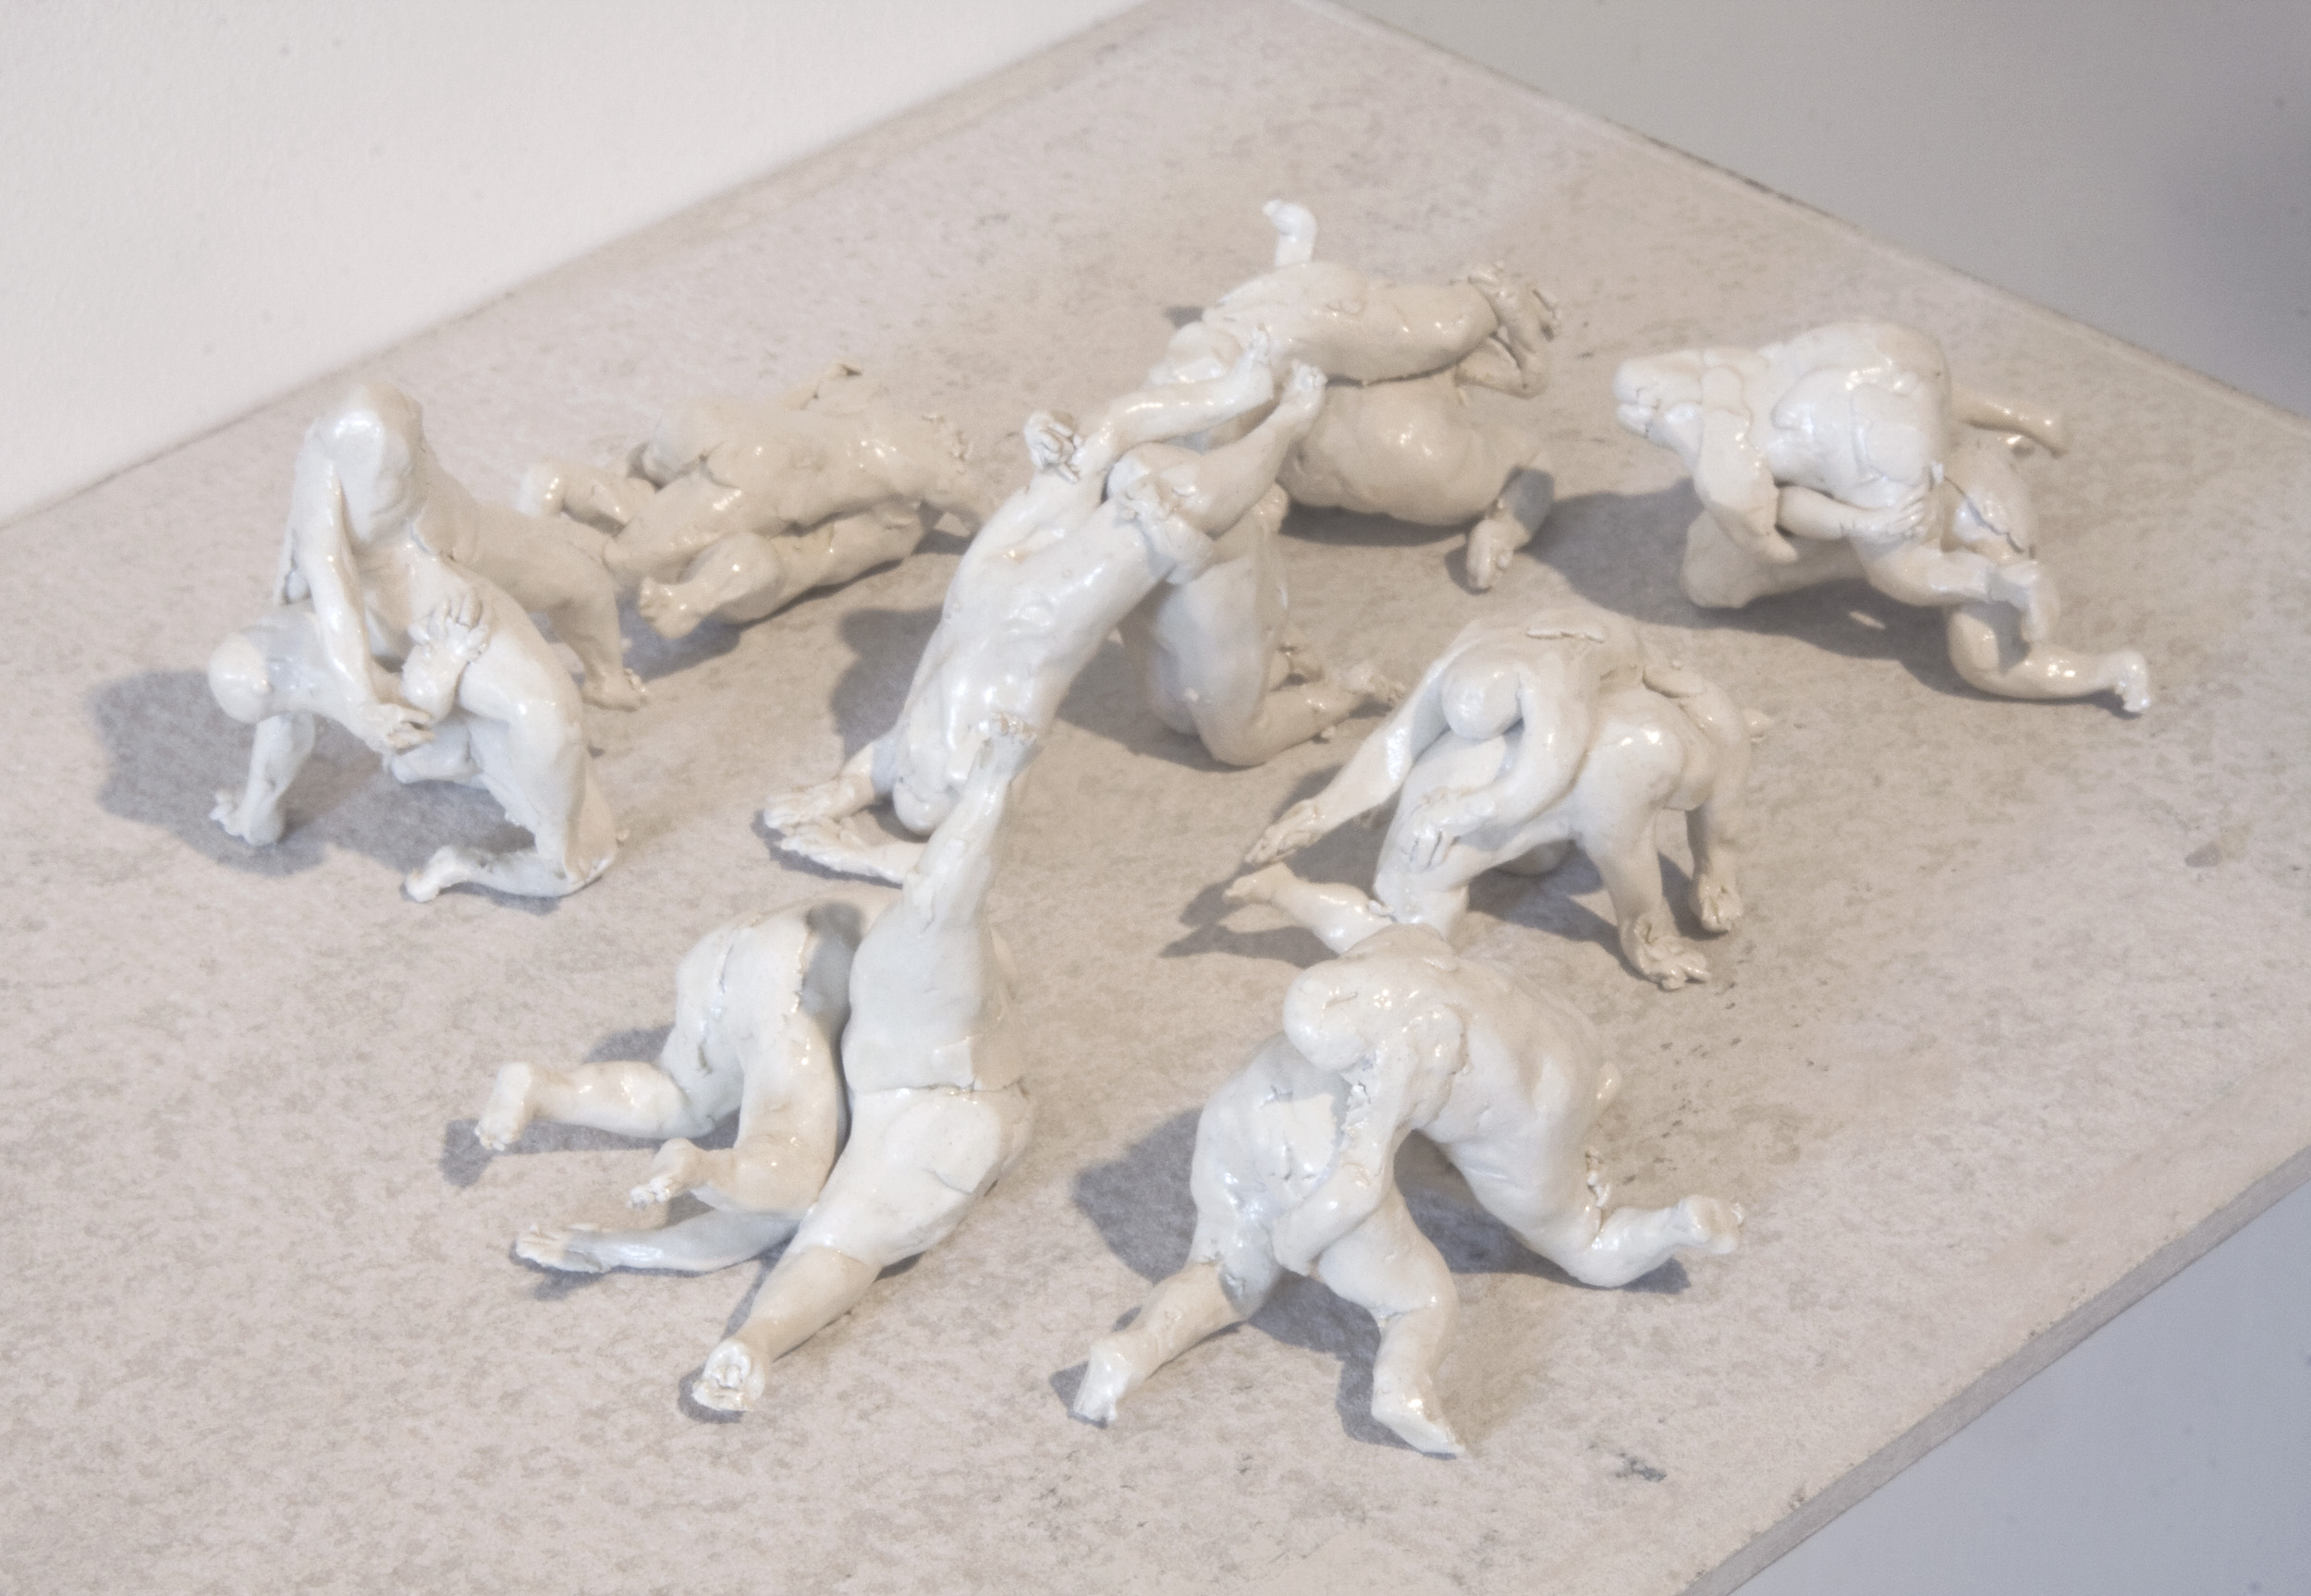 Wrestlers (figures) , clay, enamel and concrete shelf. Collaborative work with  Llewellyn Millhouse .